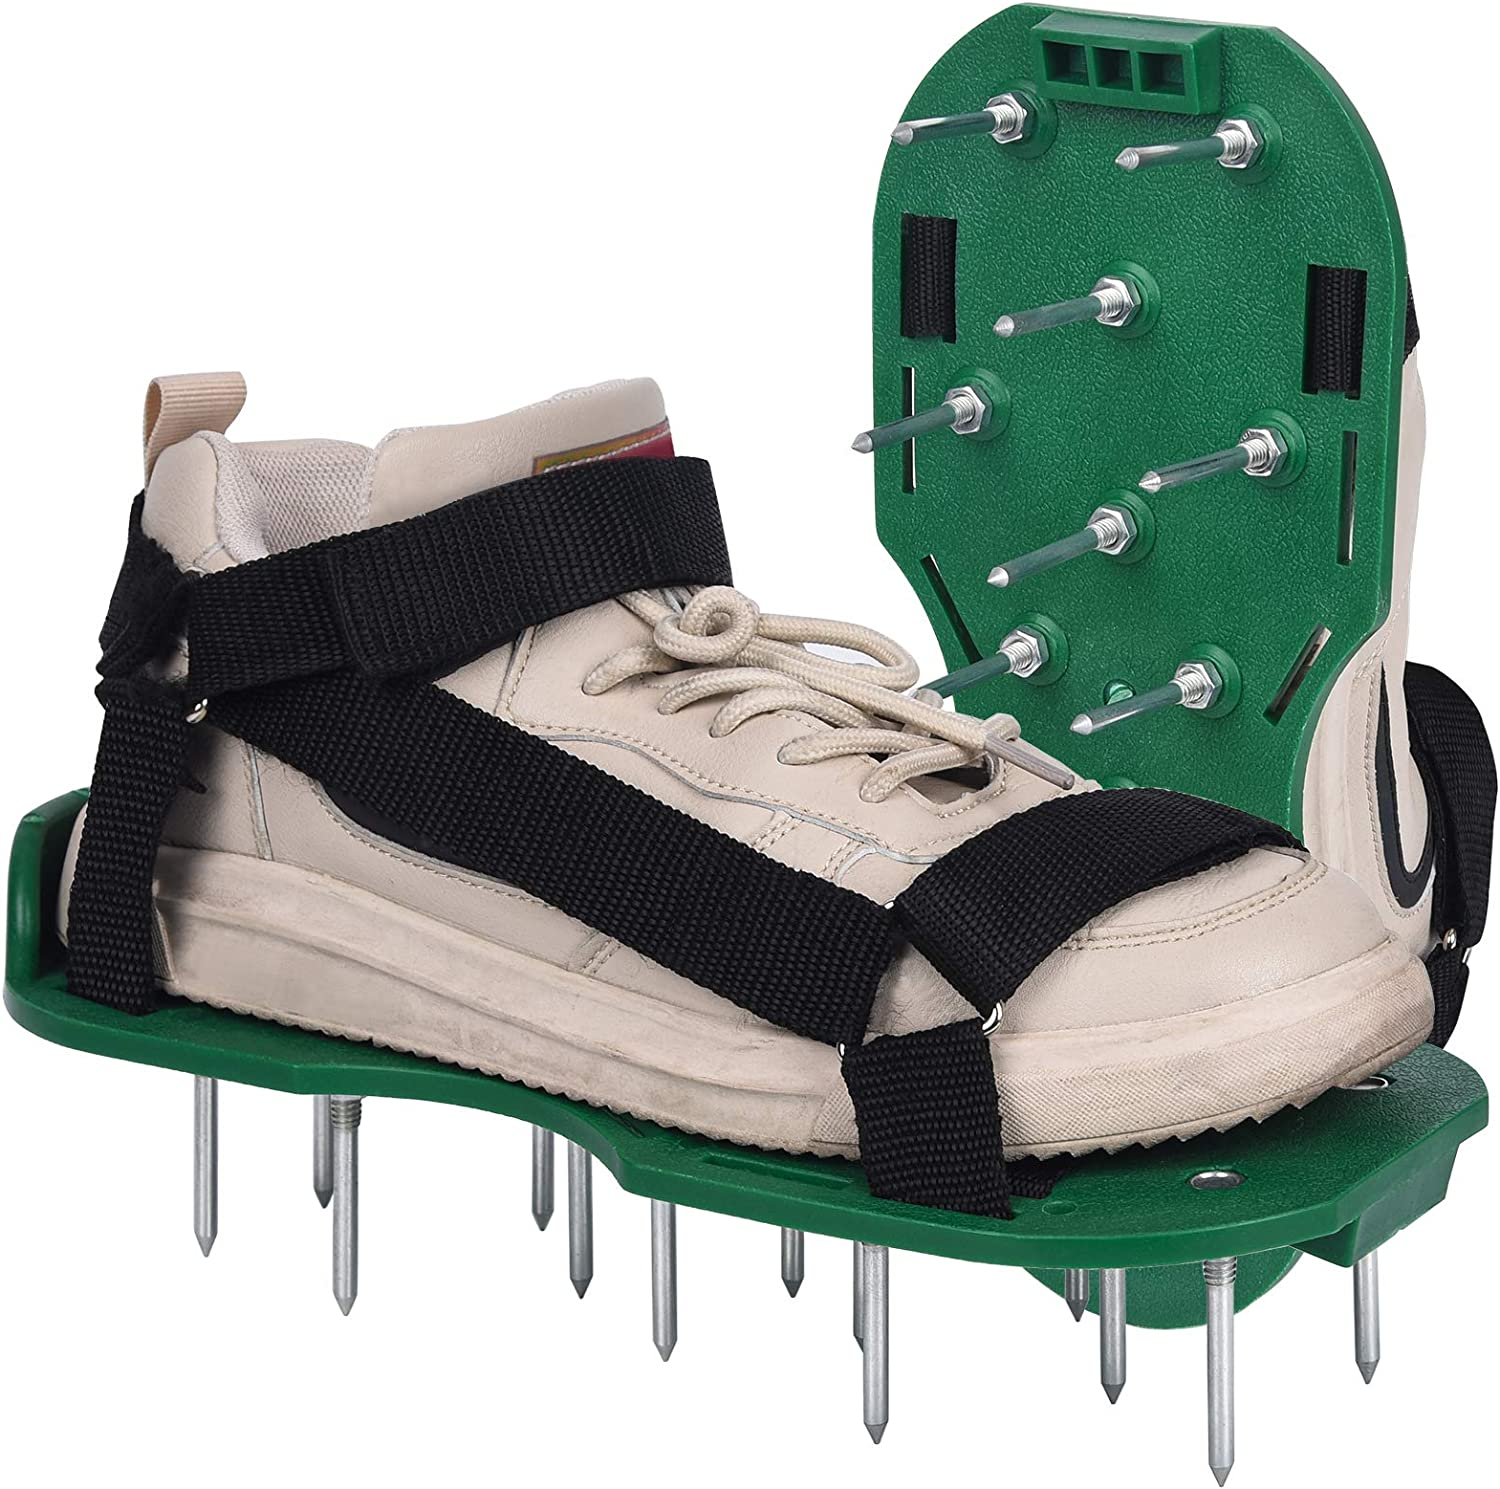 Lawn Aerator Shoes with Hook & Loop Straps, One-Size-Fits-All Manual Lawn Aerators, Heavy Duty Spiked Sandals Soil Aeration Shoes for Yard Patio Lawn Garden